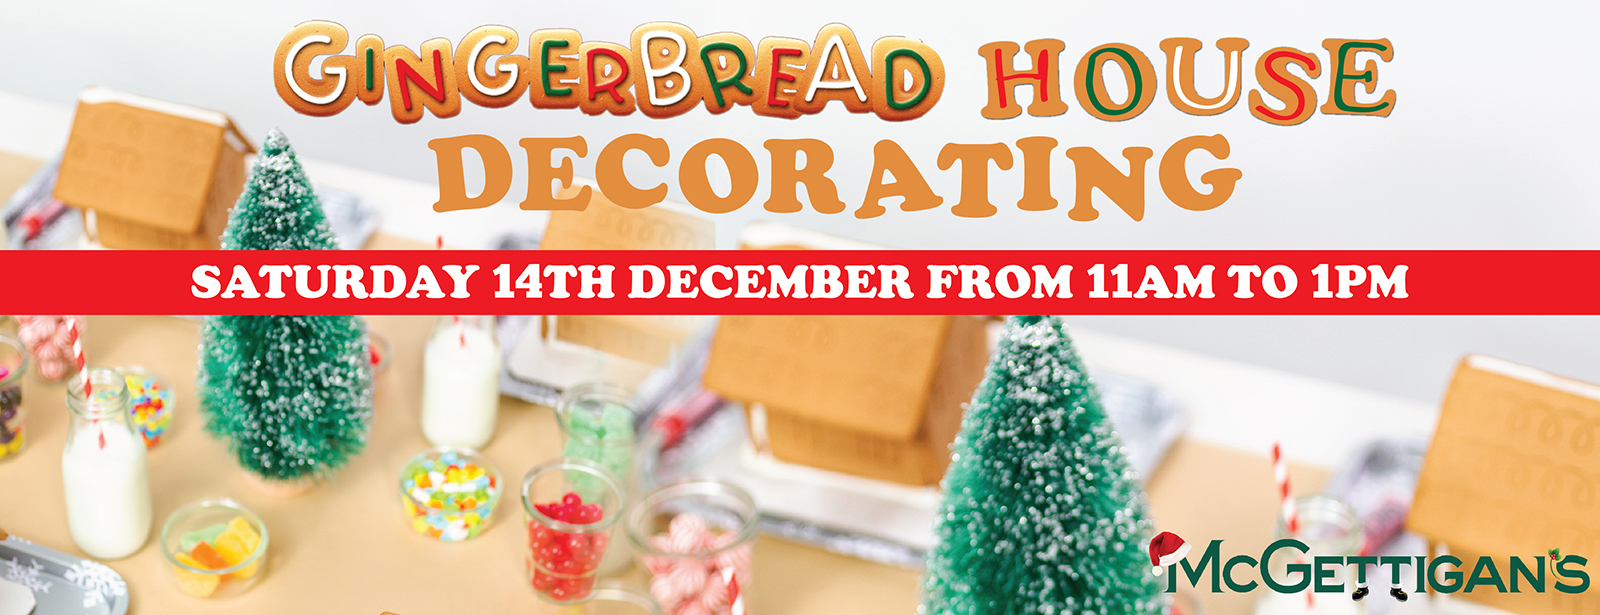 McGettigan's JLT Gingerbread House Decorating Workshop 2019